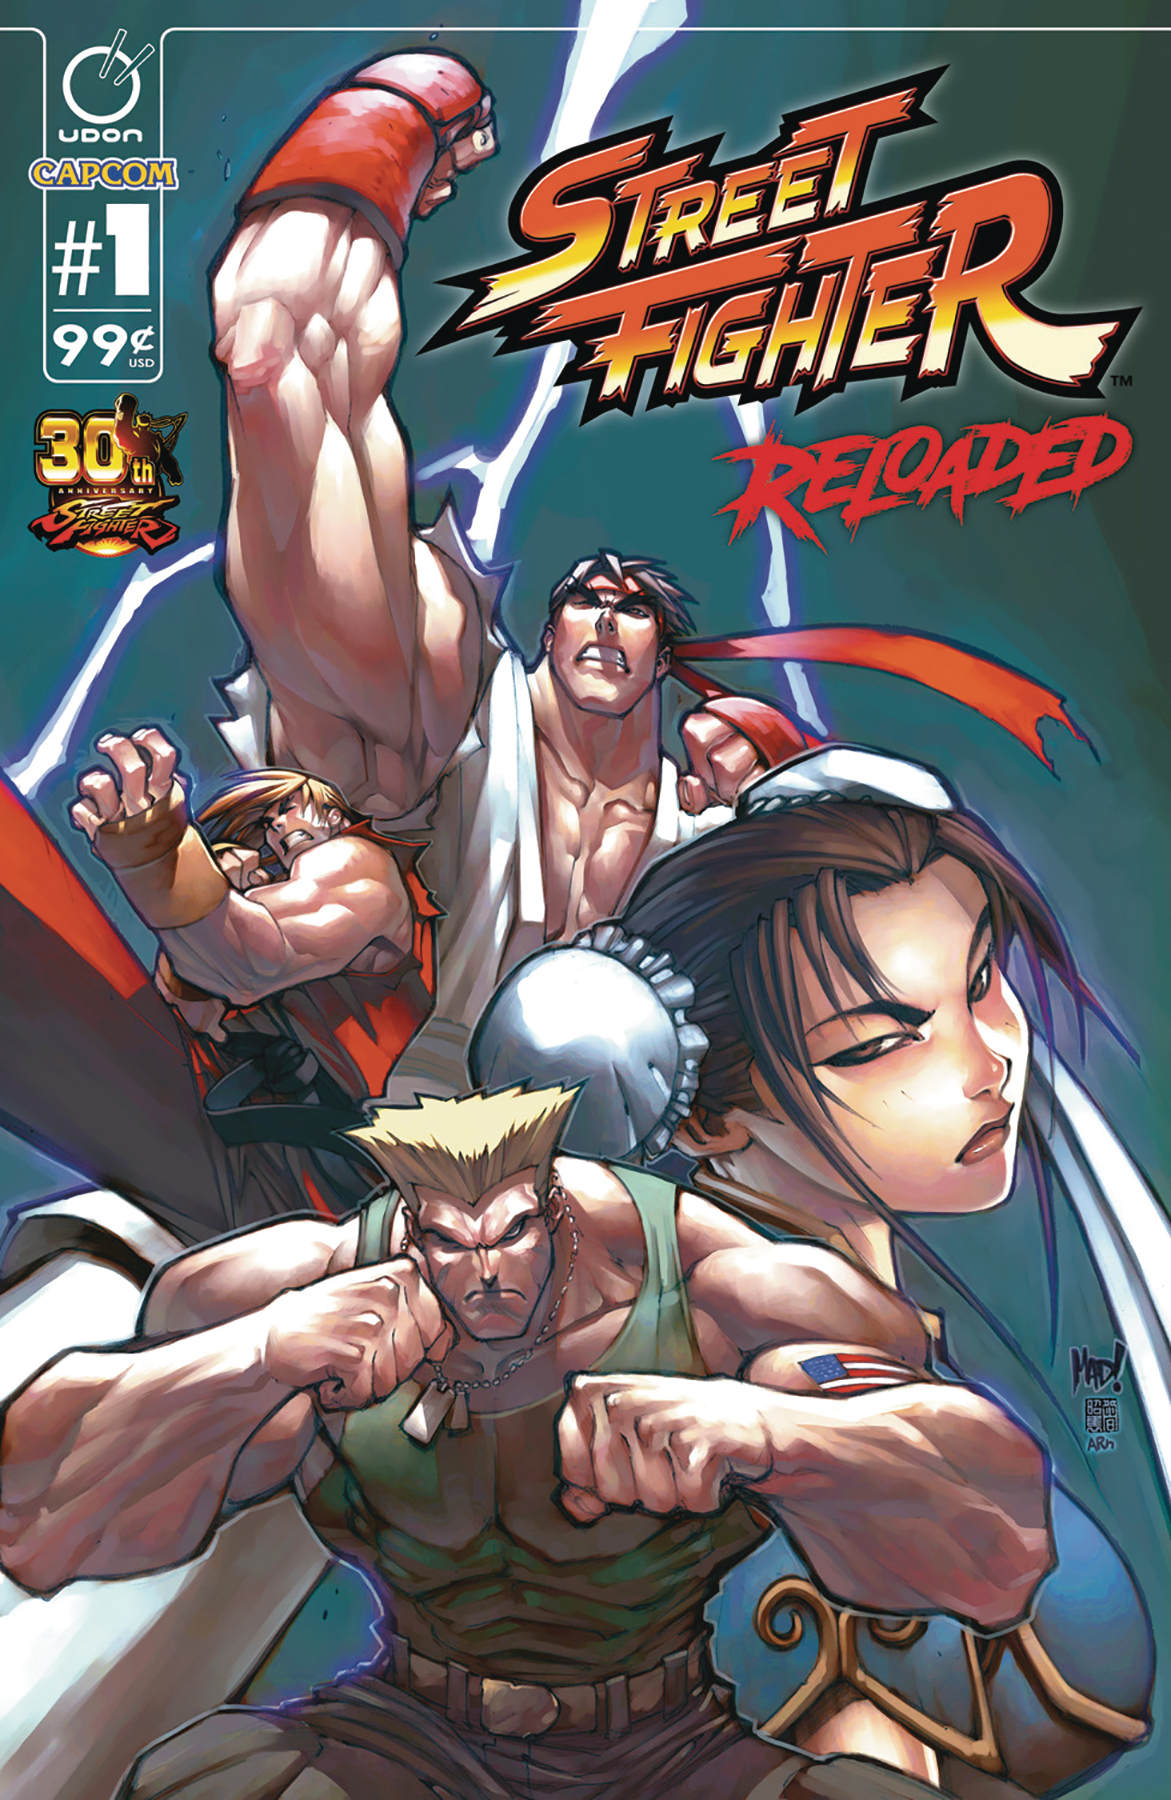 STREET FIGHTER RELOADED #1